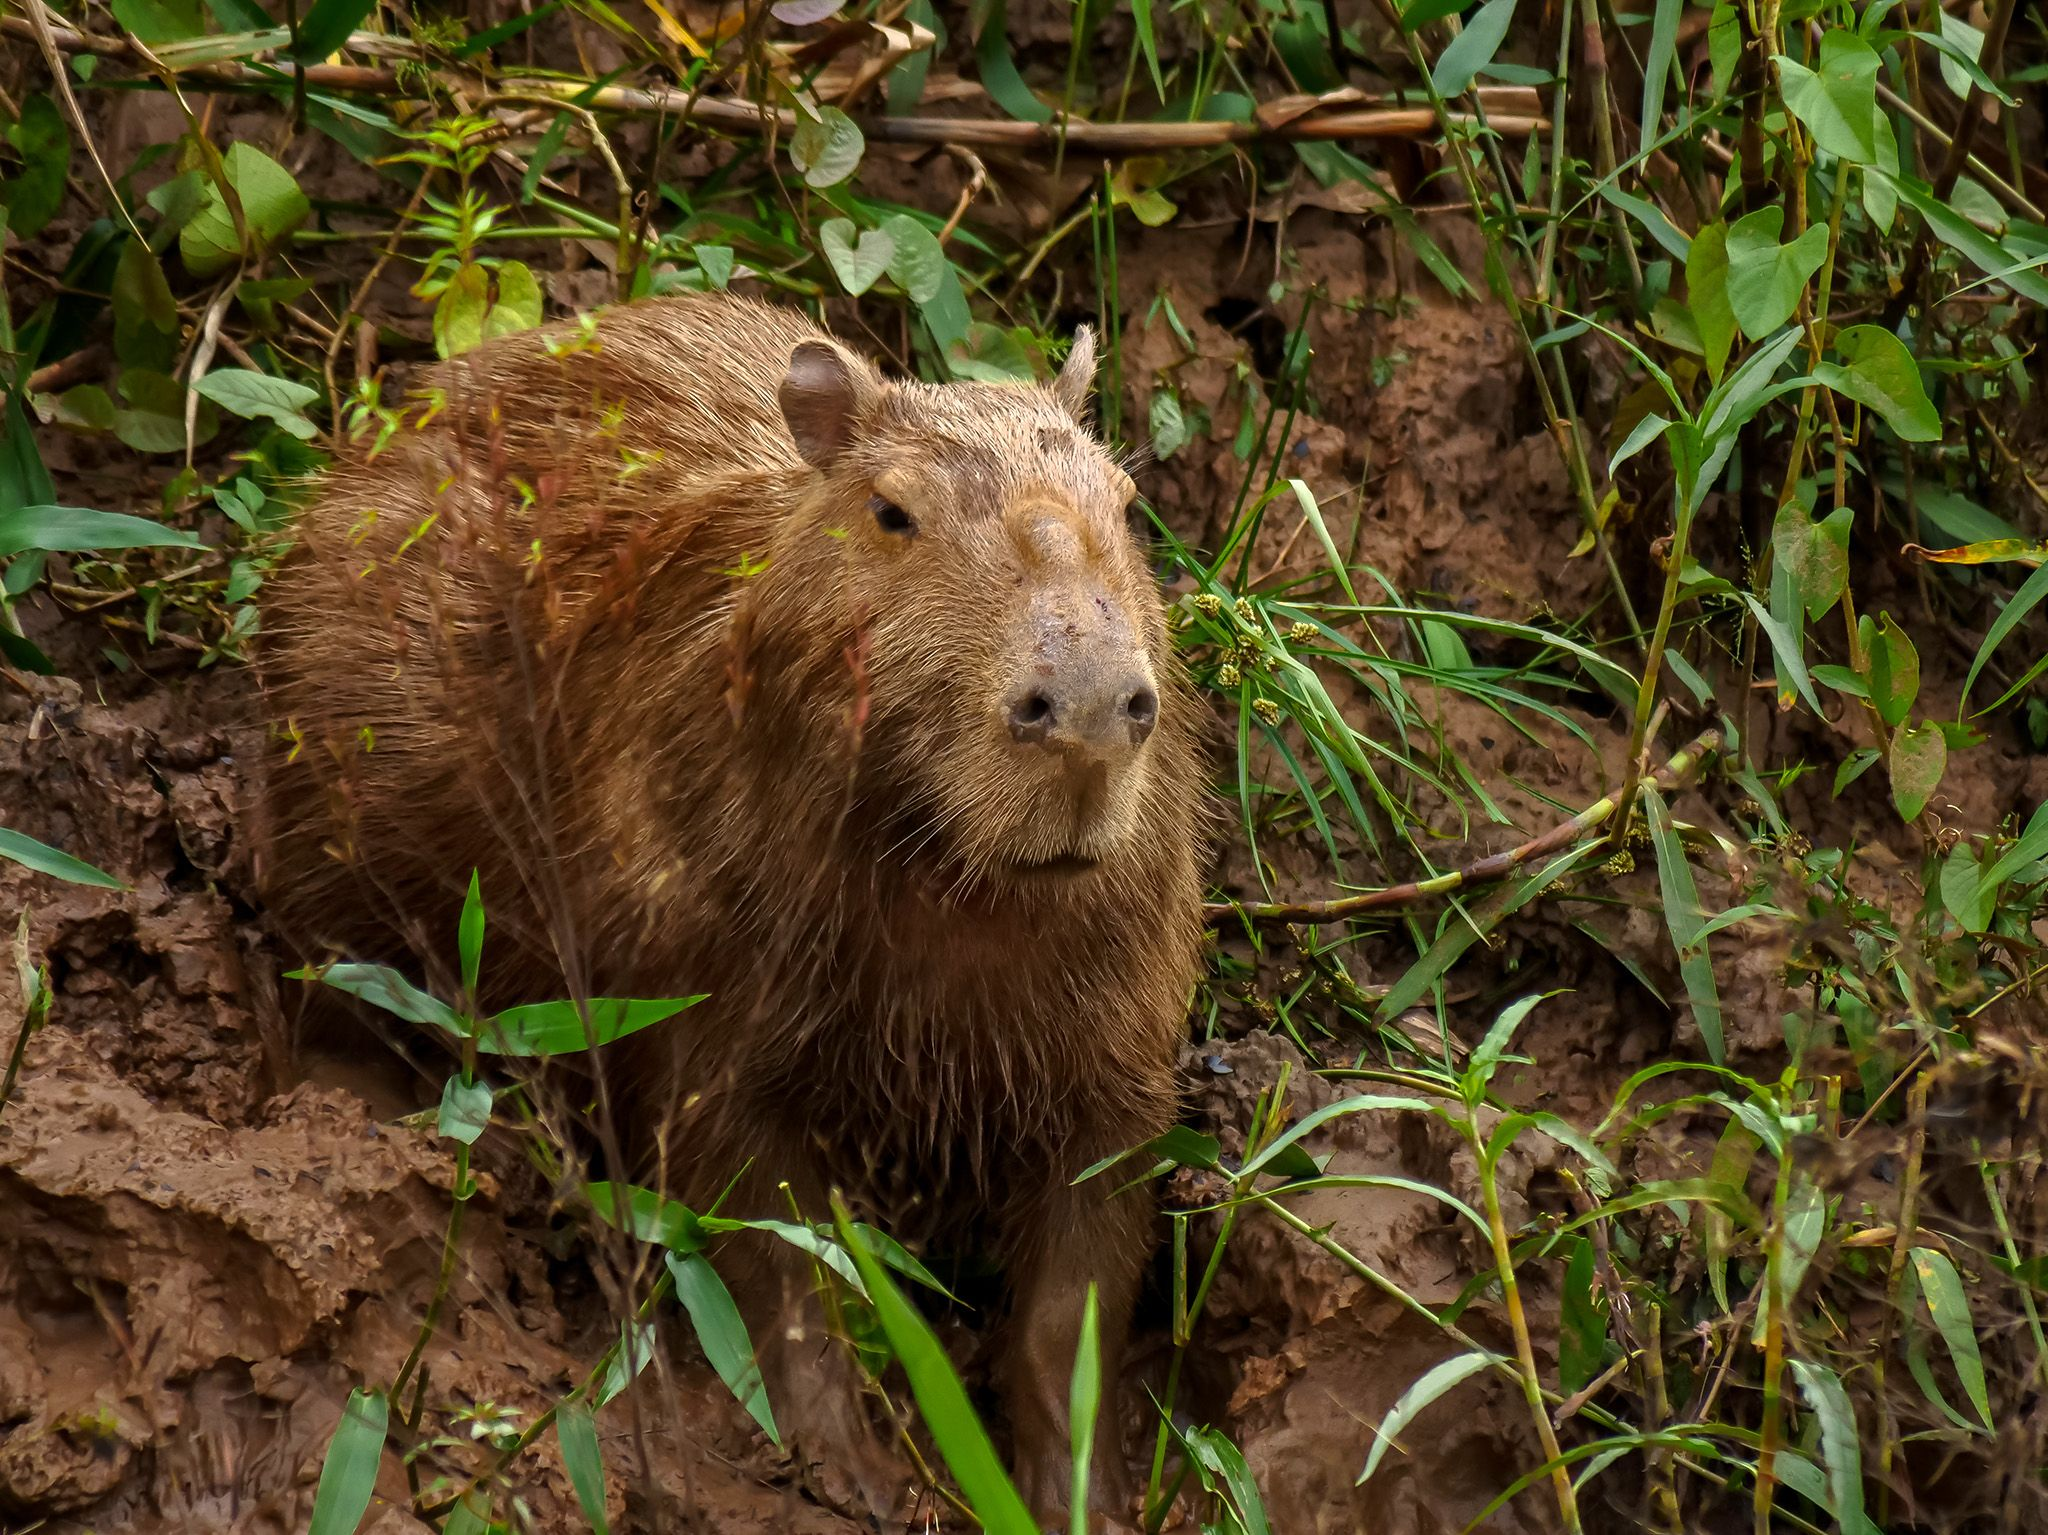 Capybara on a river bank. This image is from Wild Peru: Andes Battleground. [Photo of the day - October 2020]